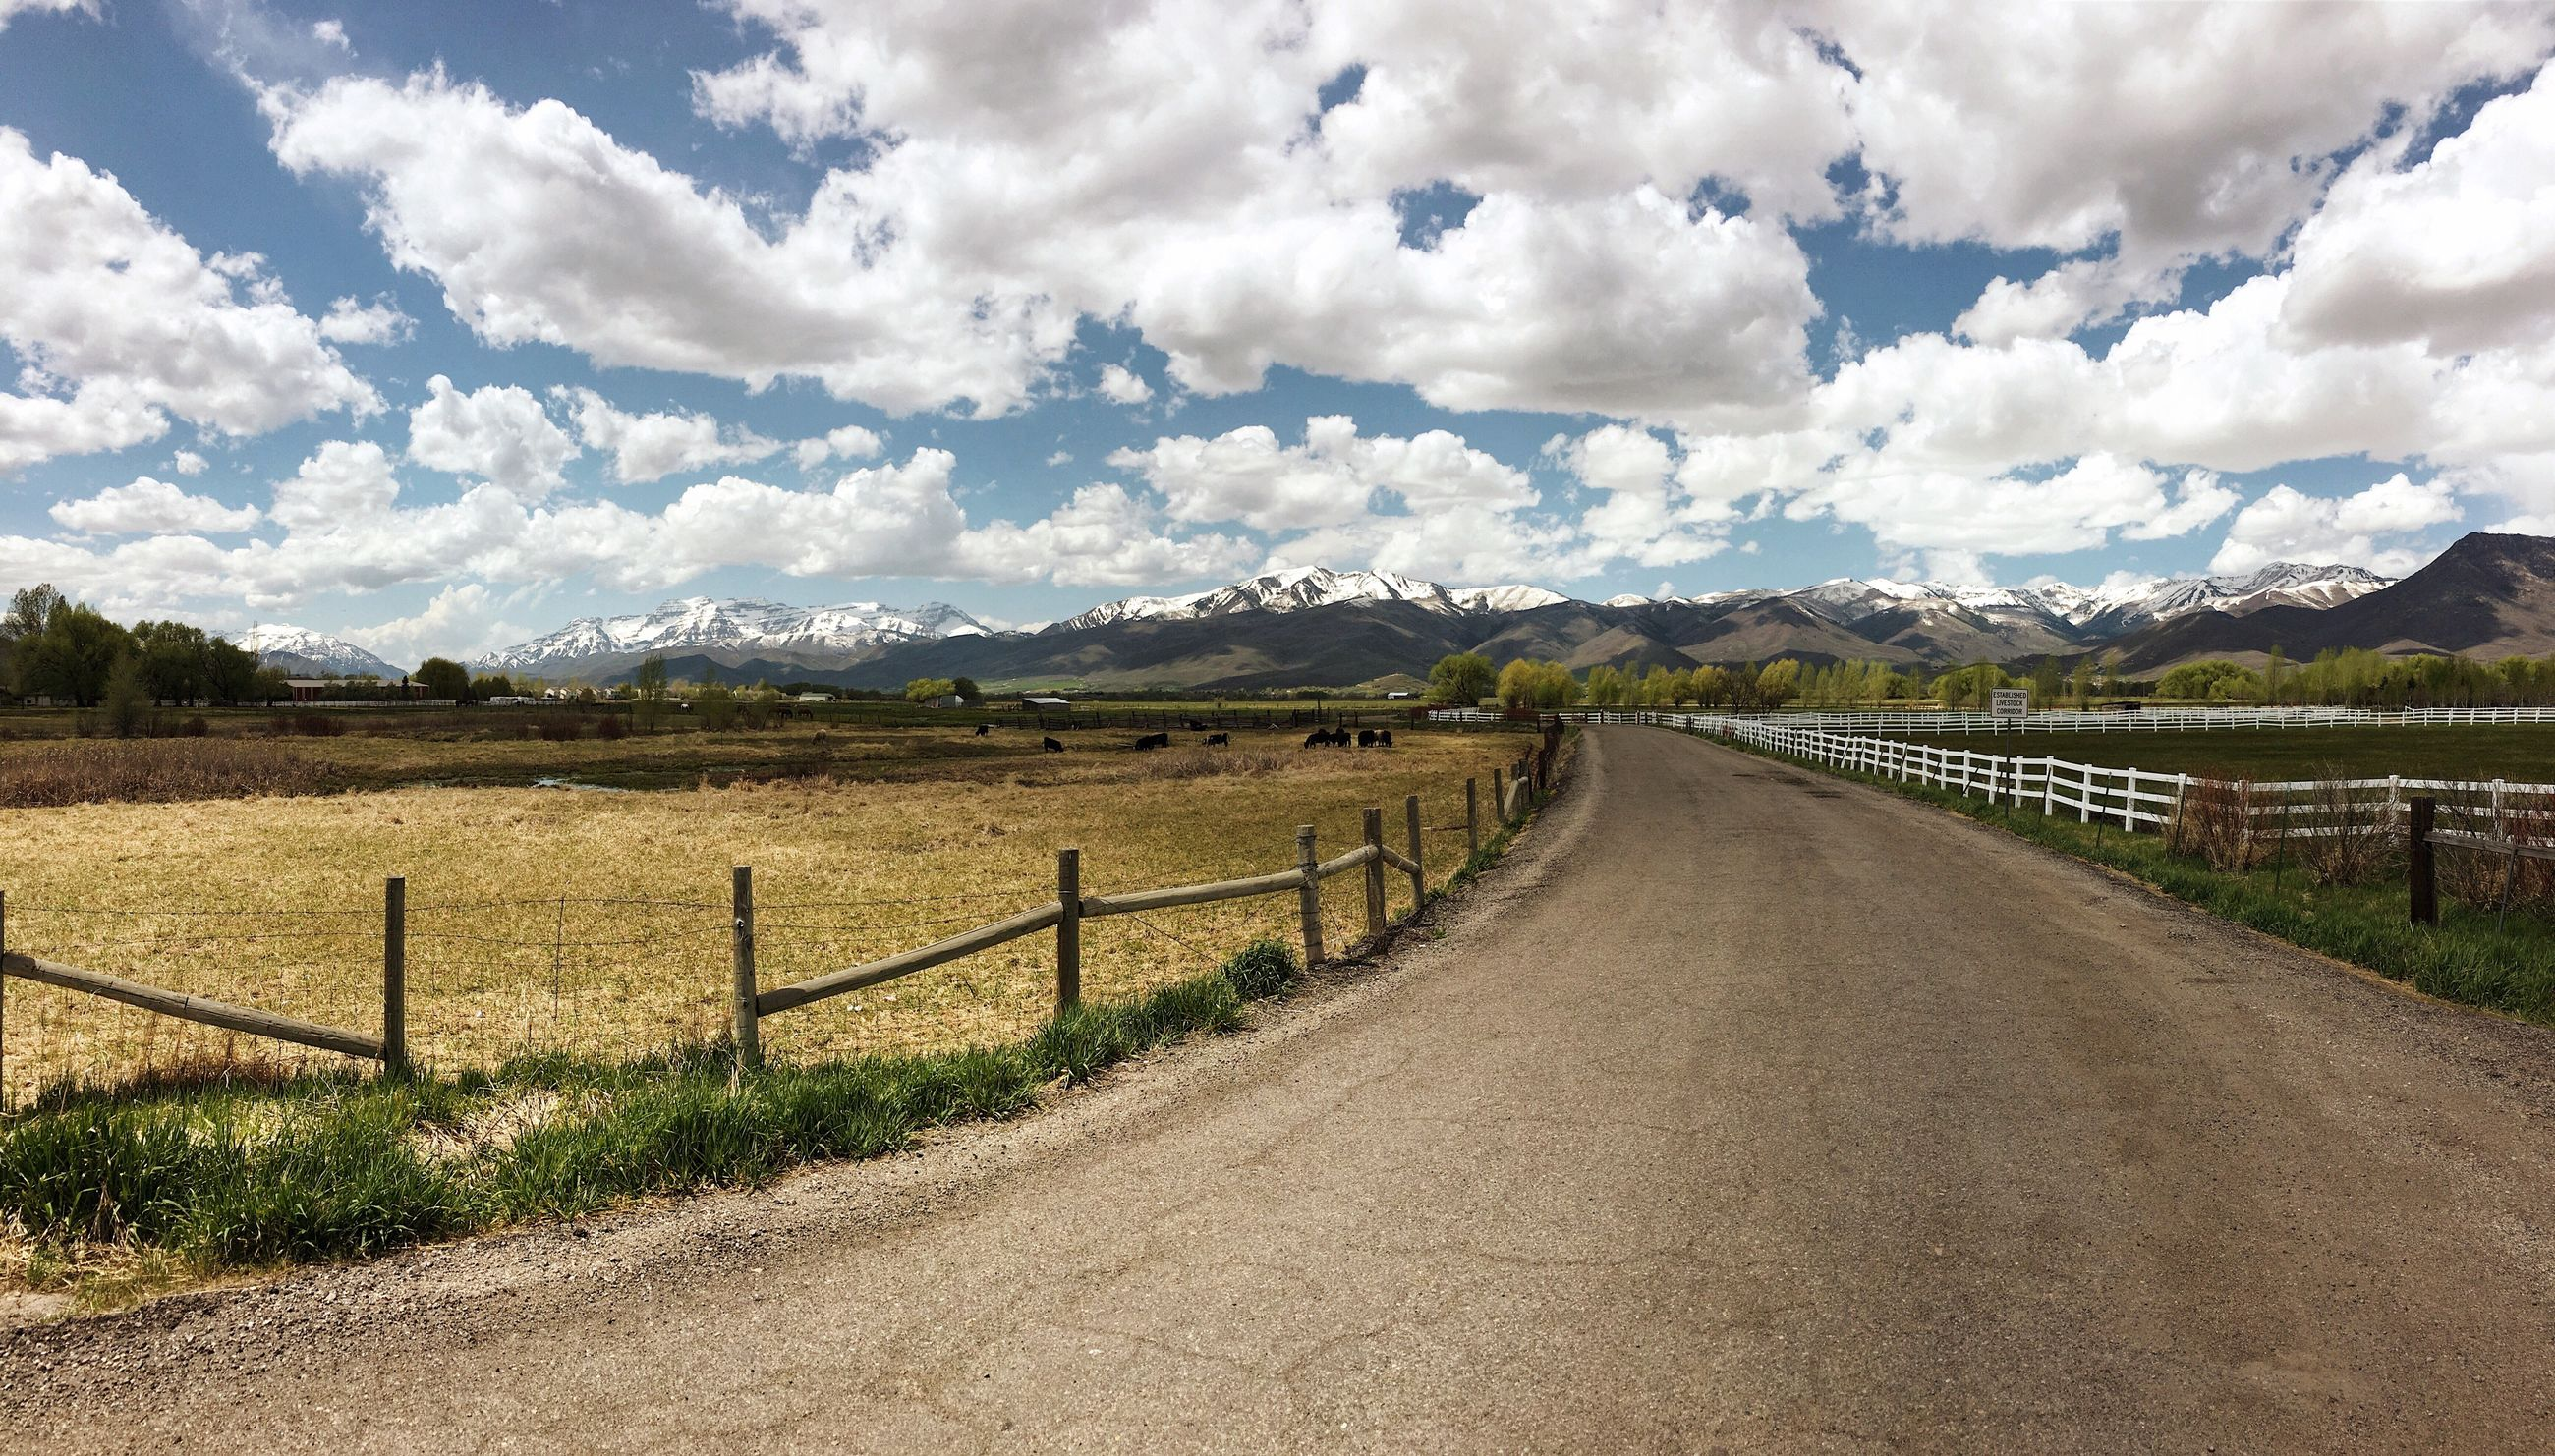 the way forward, road, landscape, cloud - sky, scenics, tranquil scene, day, mountain, tranquility, no people, nature, sky, beauty in nature, rural scene, outdoors, tree